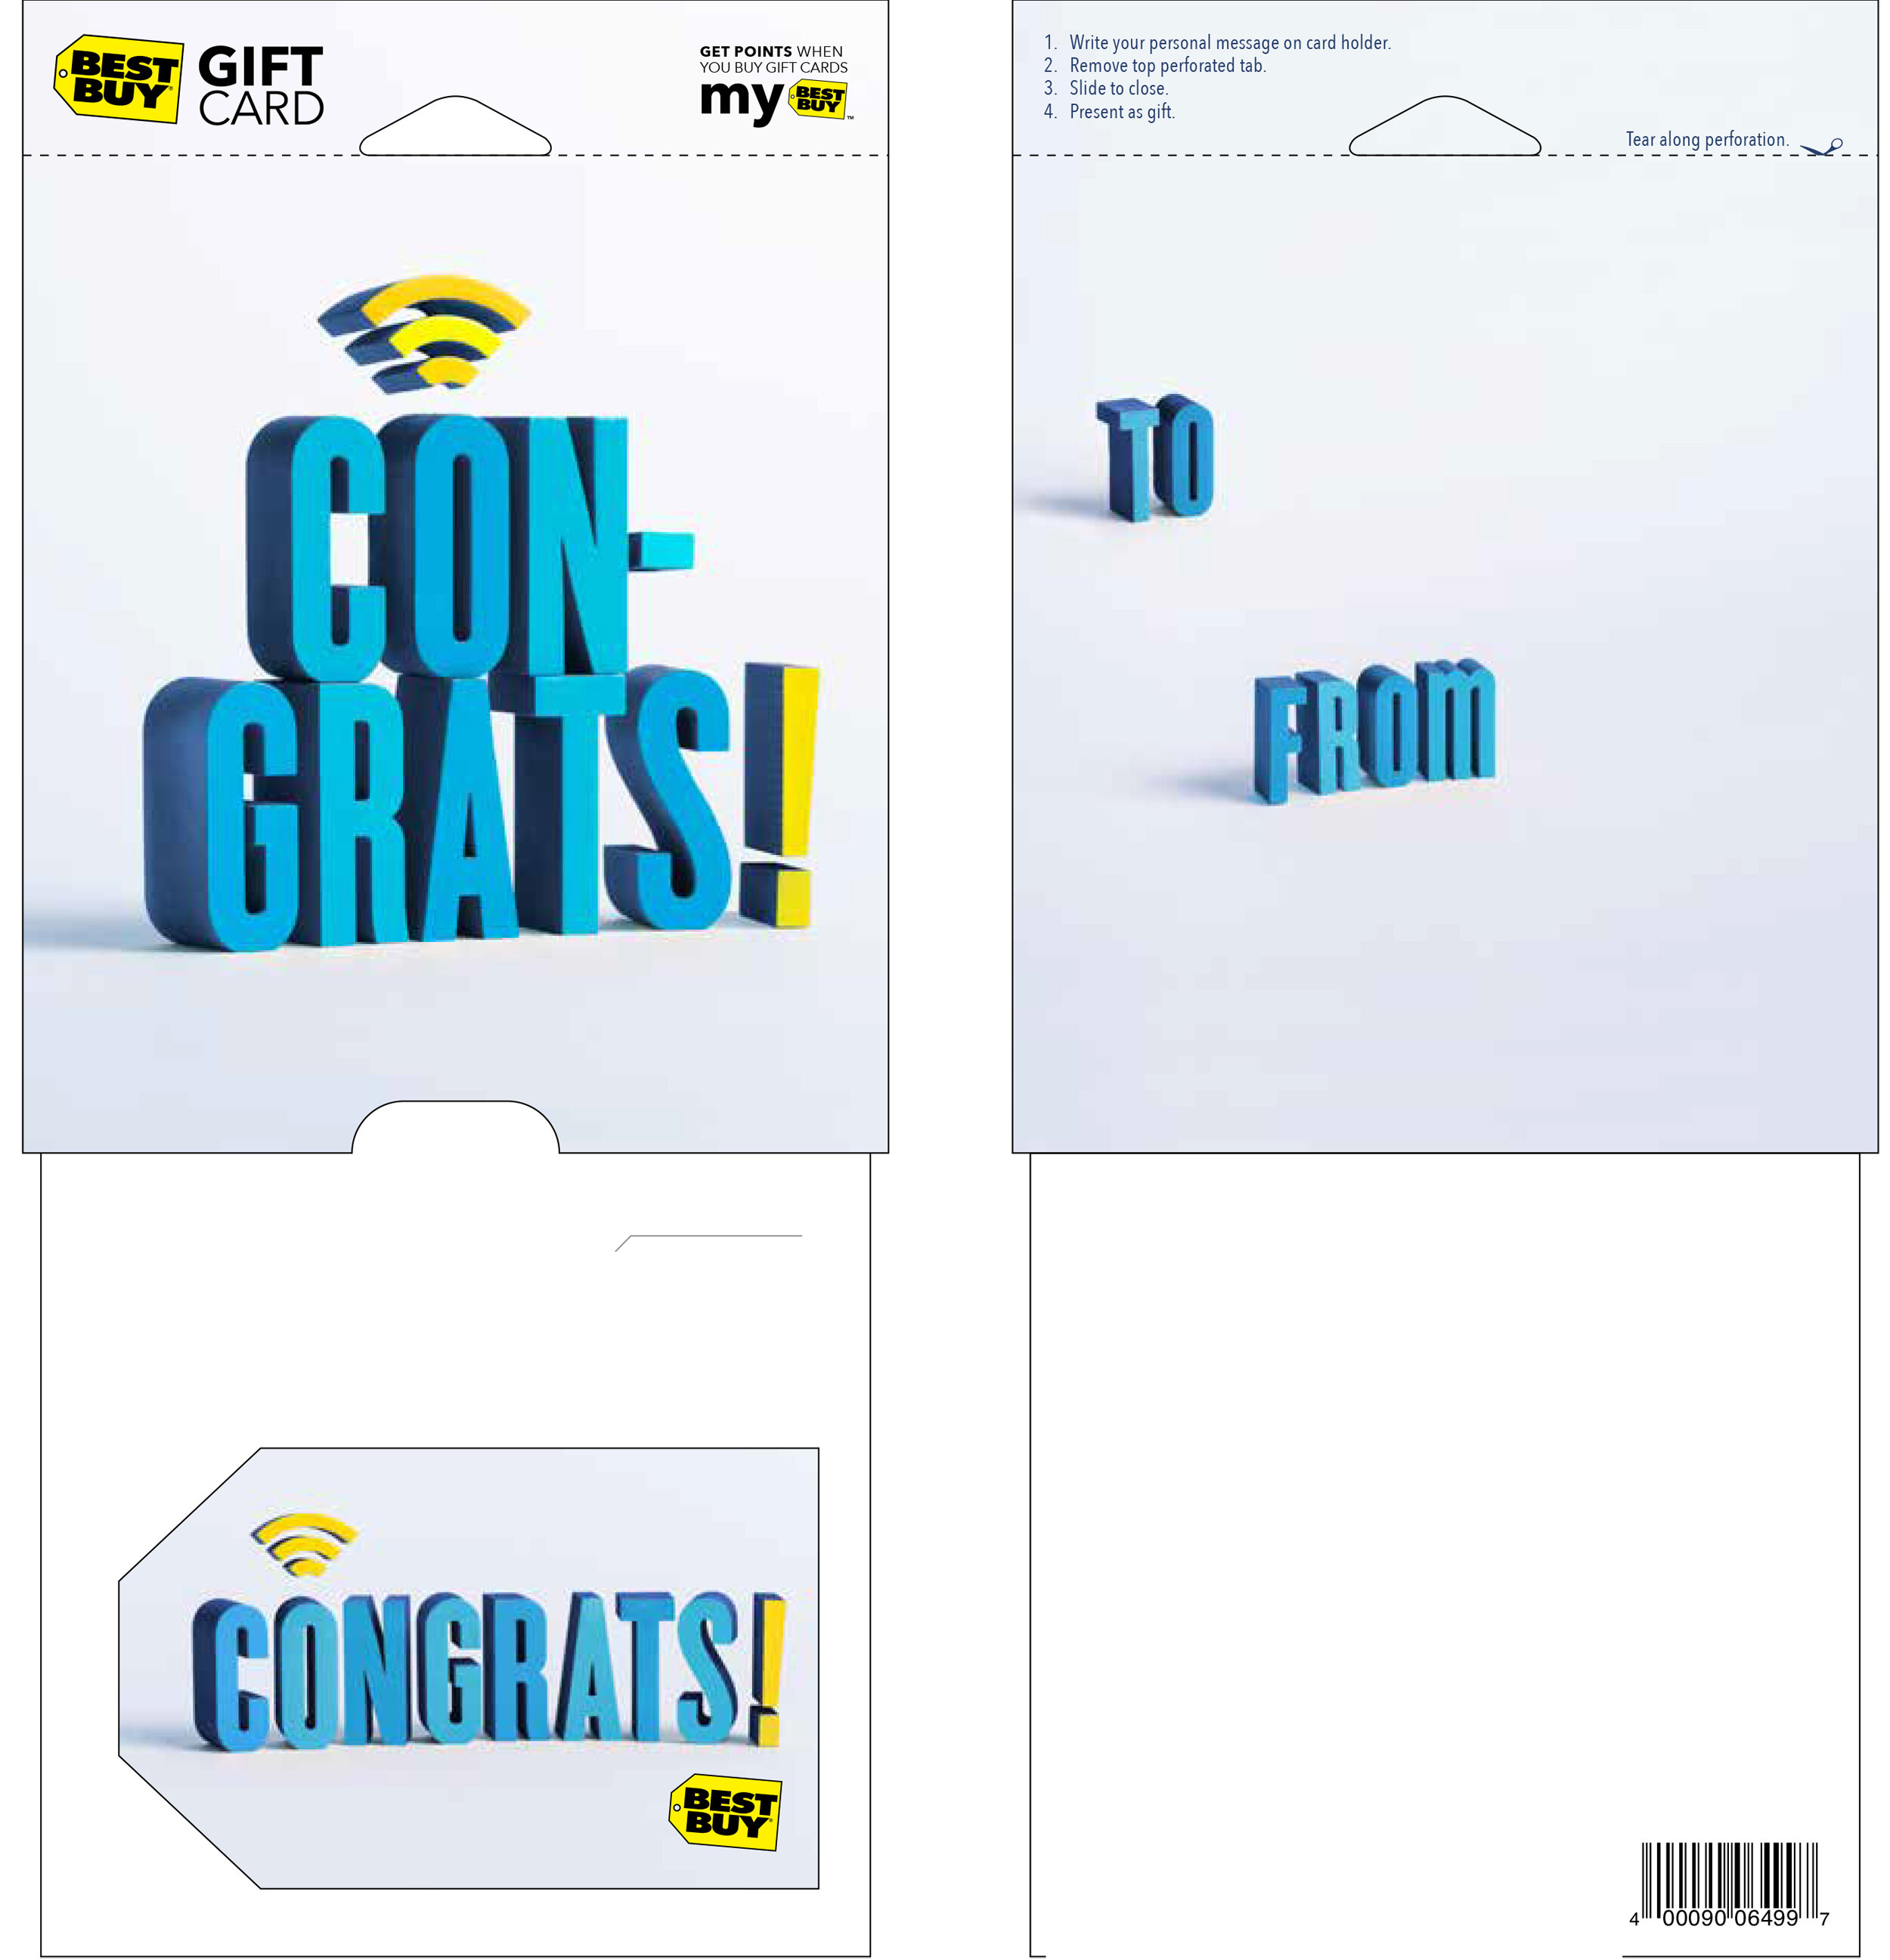 34206_BBY_MARCH_GIFTCARDS_RD03A-5.jpg